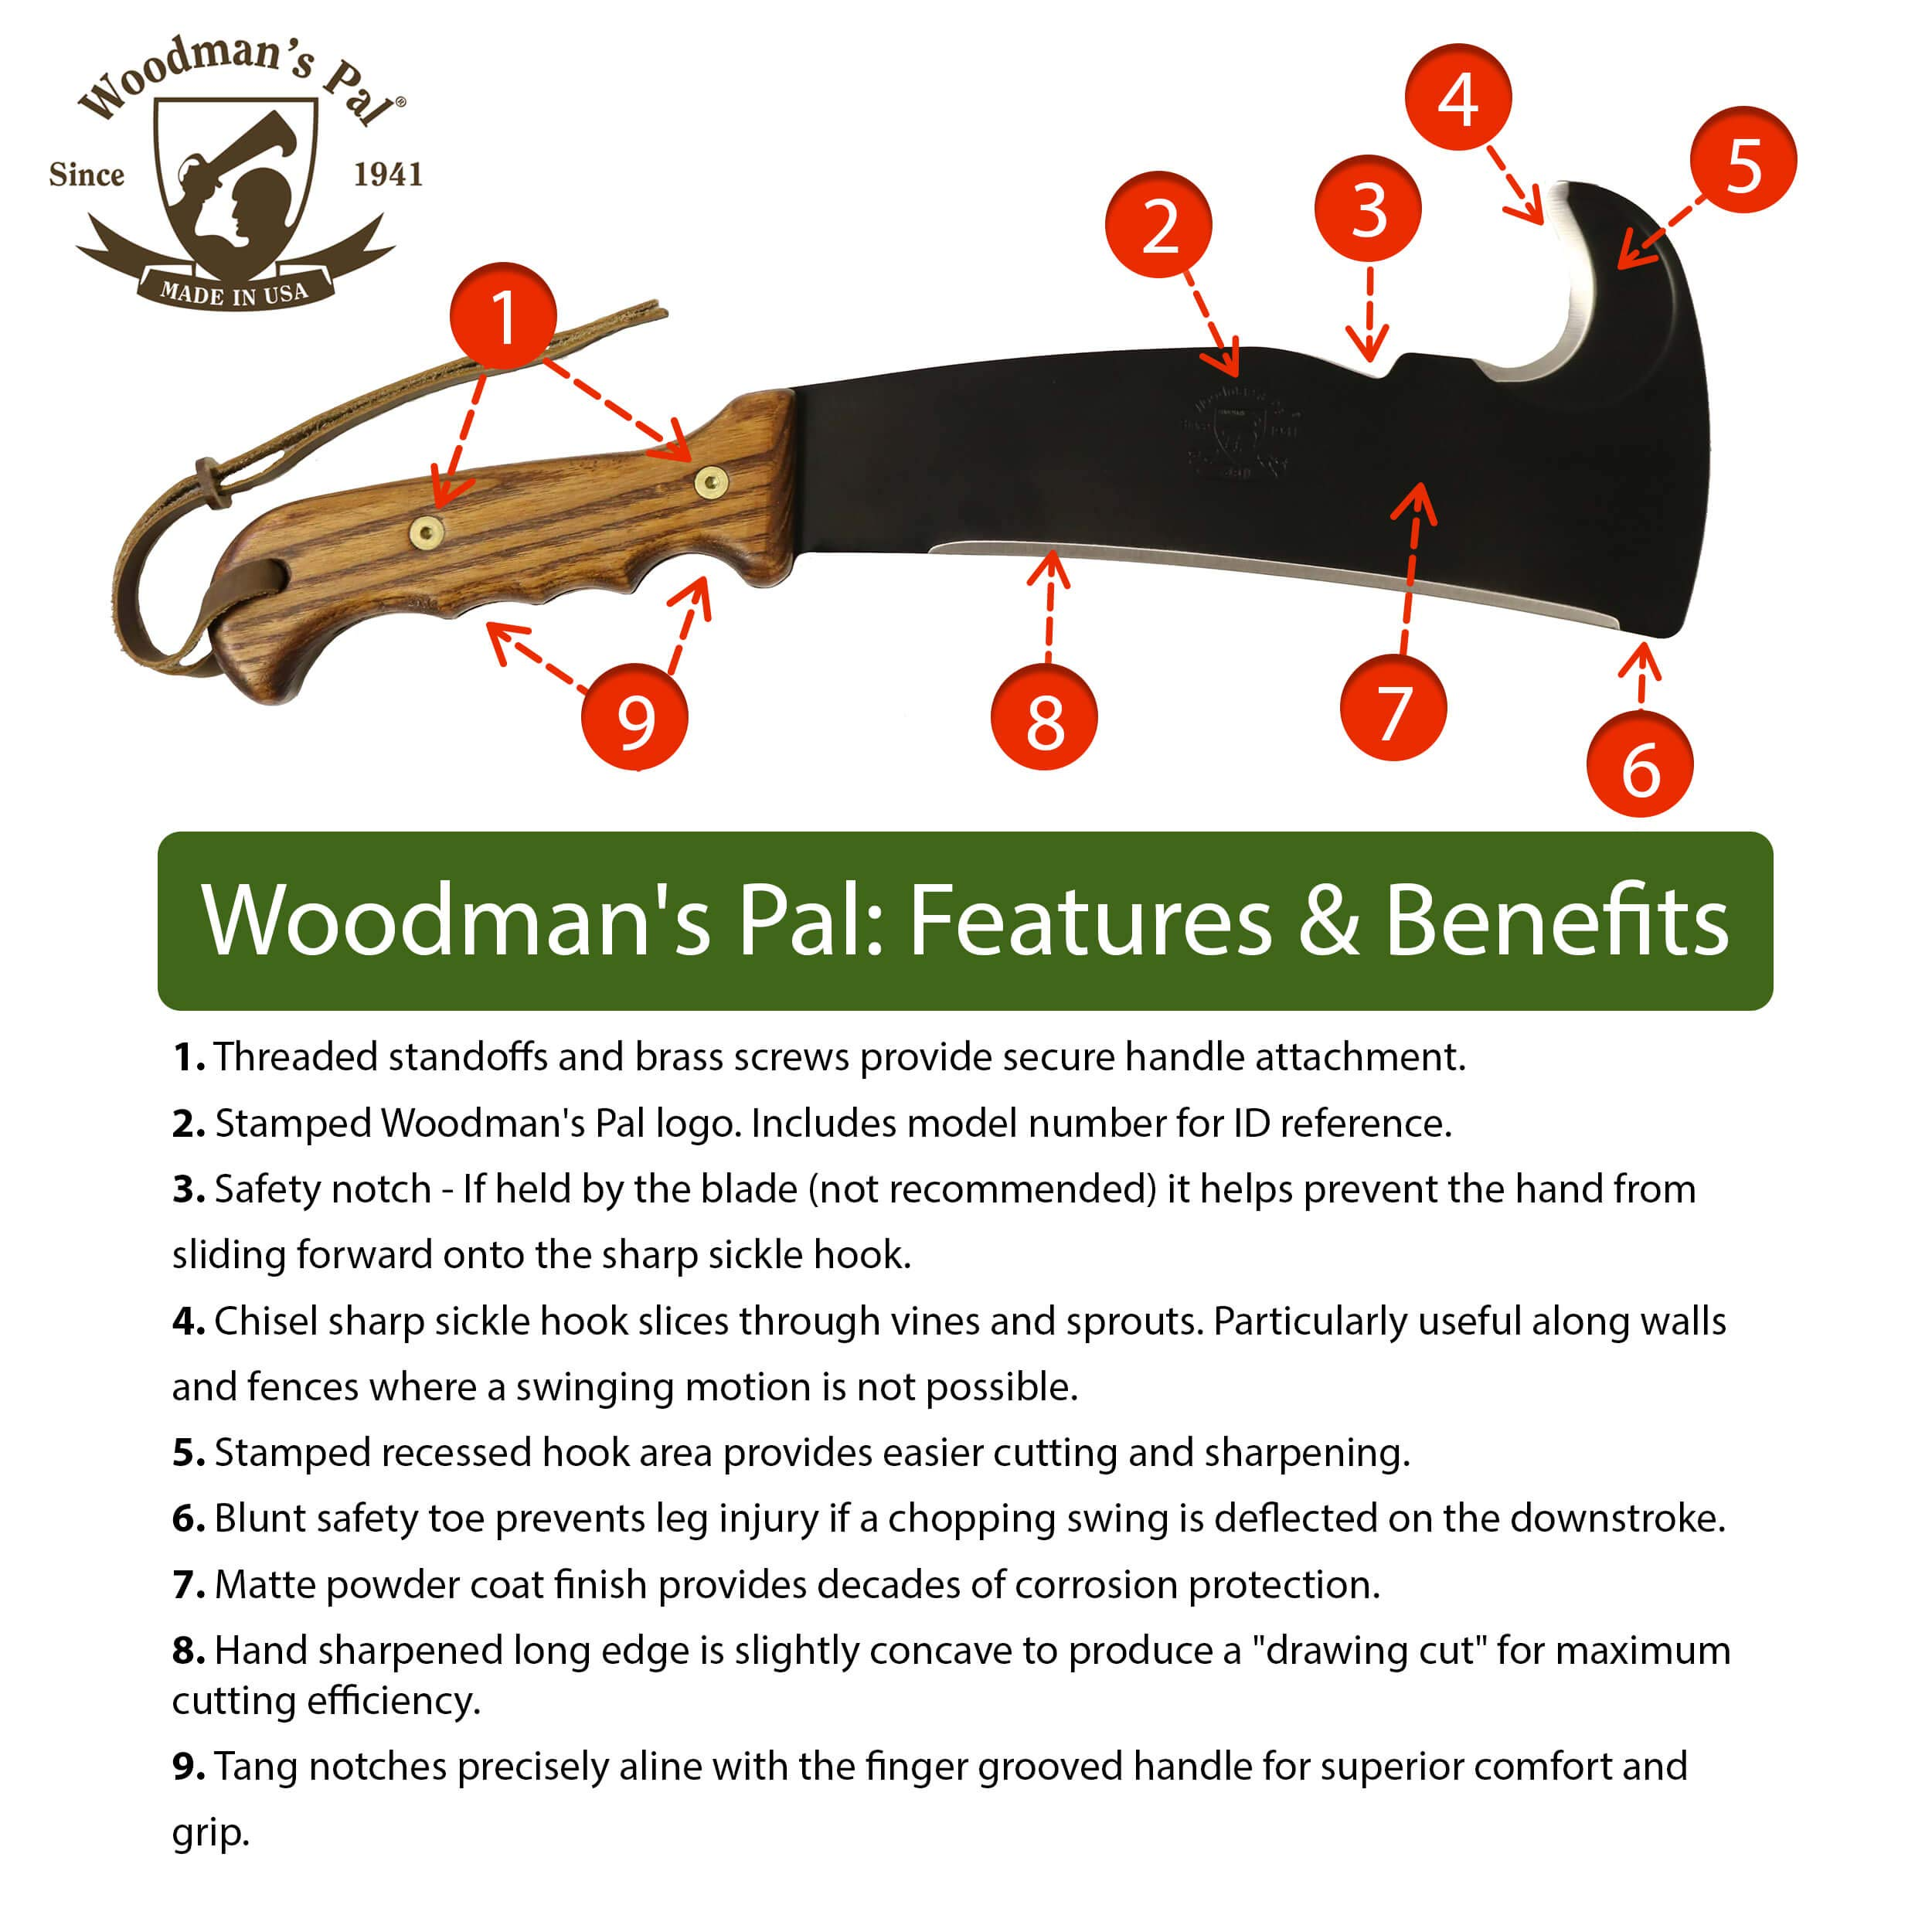 Woodman's Pal 2.0 - Multi-Use Axe Machete with Sheath - Survival Machete Ideal for Camping, Fishing, Hunting, Bushcraft - Perfect Brush Axe for Surveying by Woodman's Pal (Image #2)